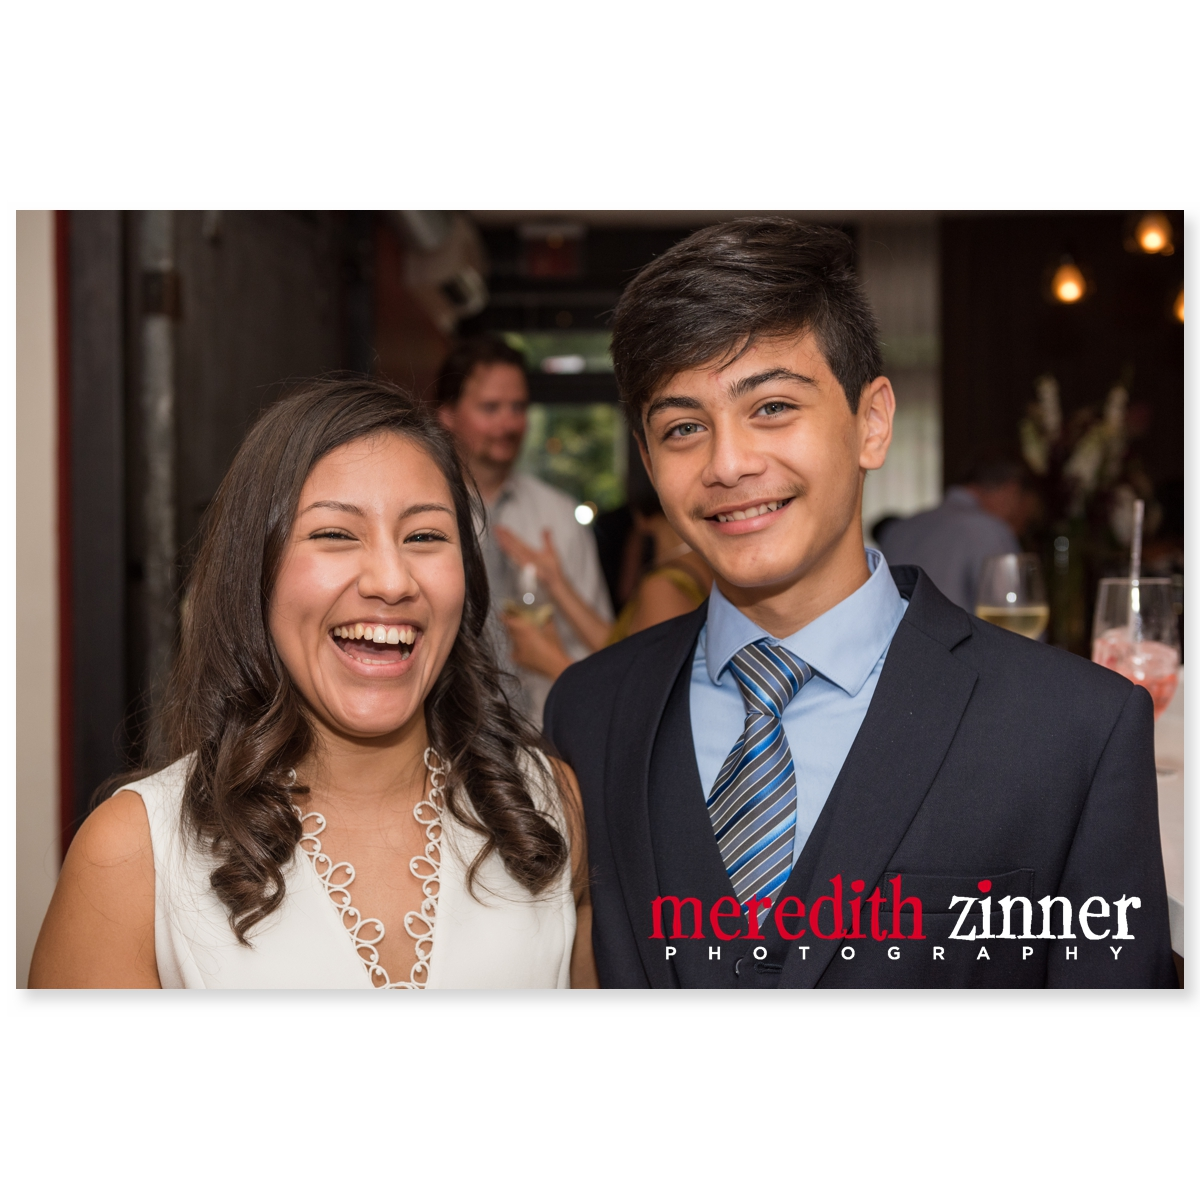 Meredith_Zinner_Photography_StilesCelebration_0126